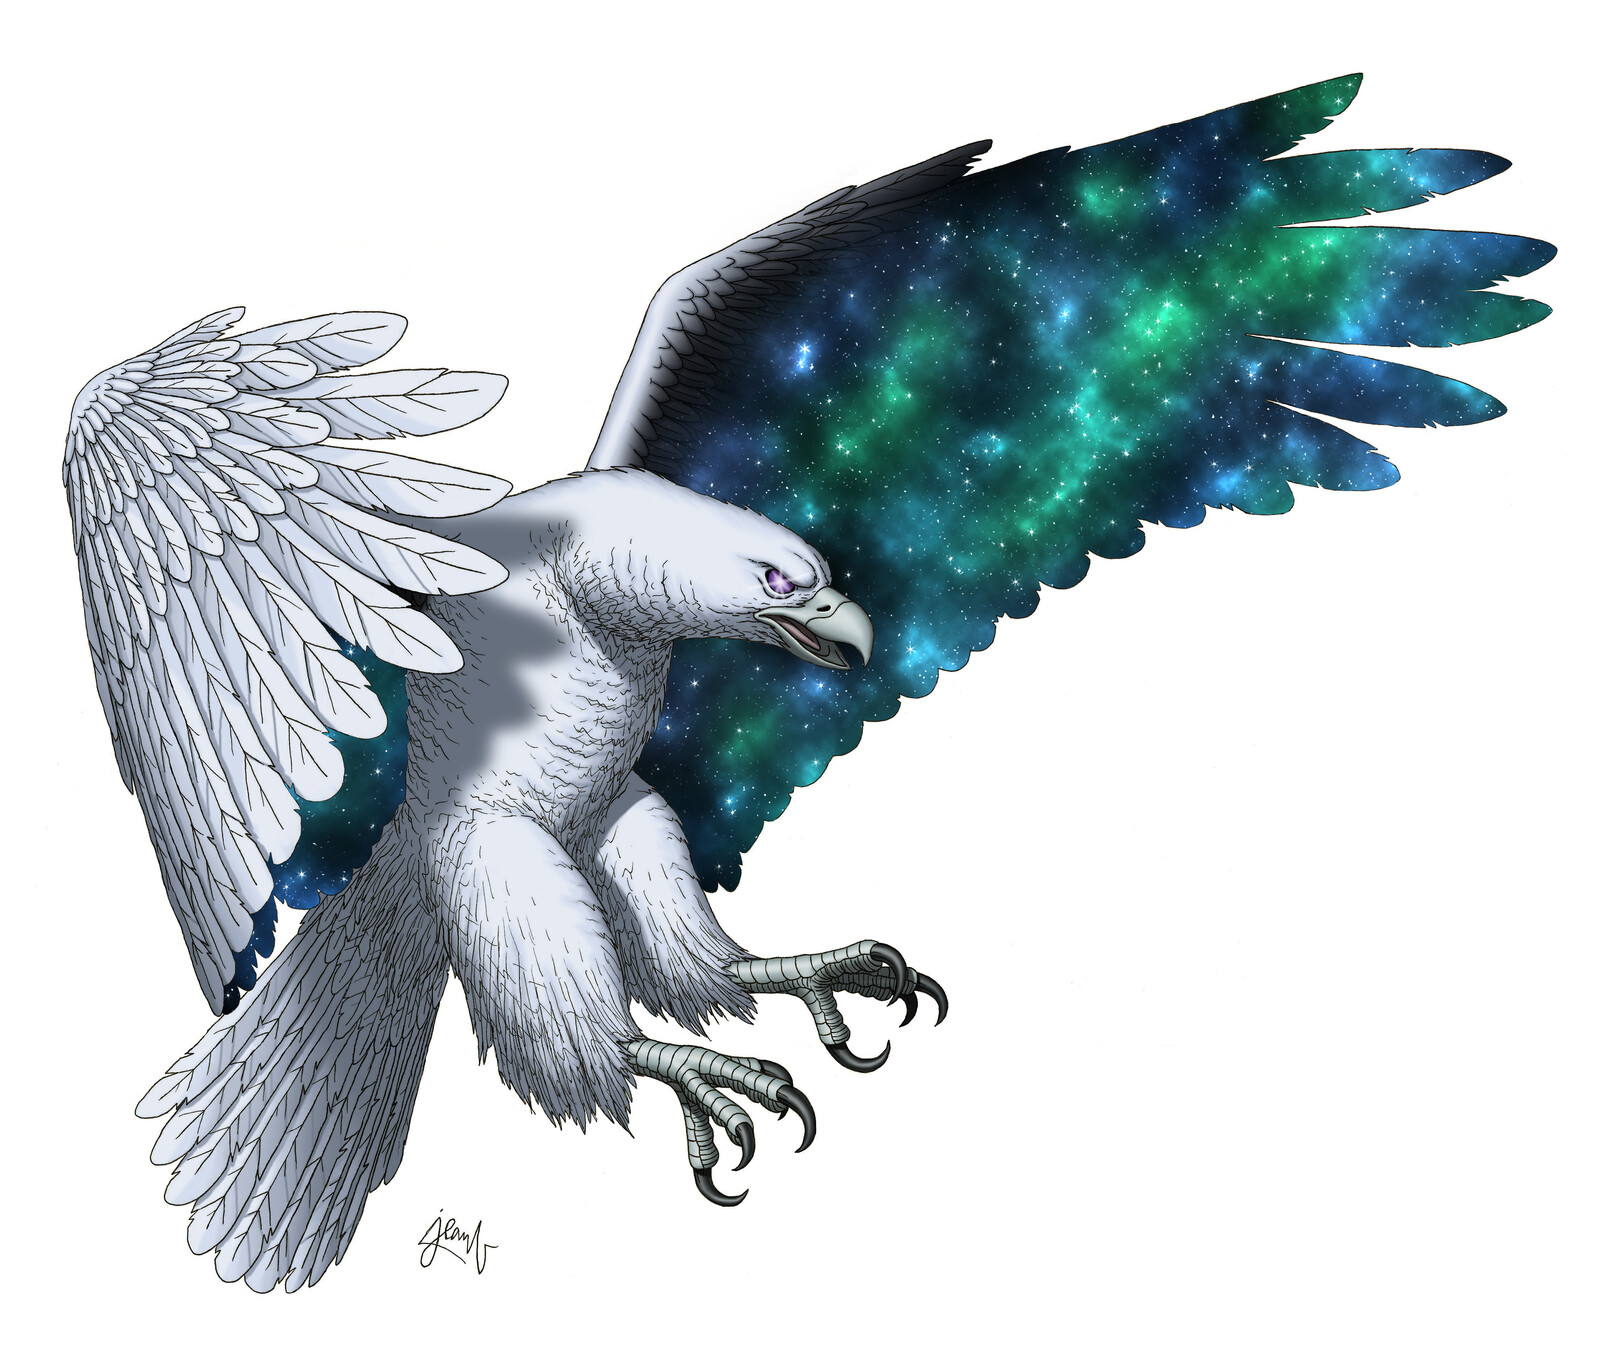 """Here's my take on Hræsvelgr (pronounced """"fresvelgurr"""", sometimes written Hræsvelg, or Hresvelgr), who is, in Norse mythology, a jötunn (giant) taking the form of a huge eagle that sits at the end of the world, the northern edge of heavens."""